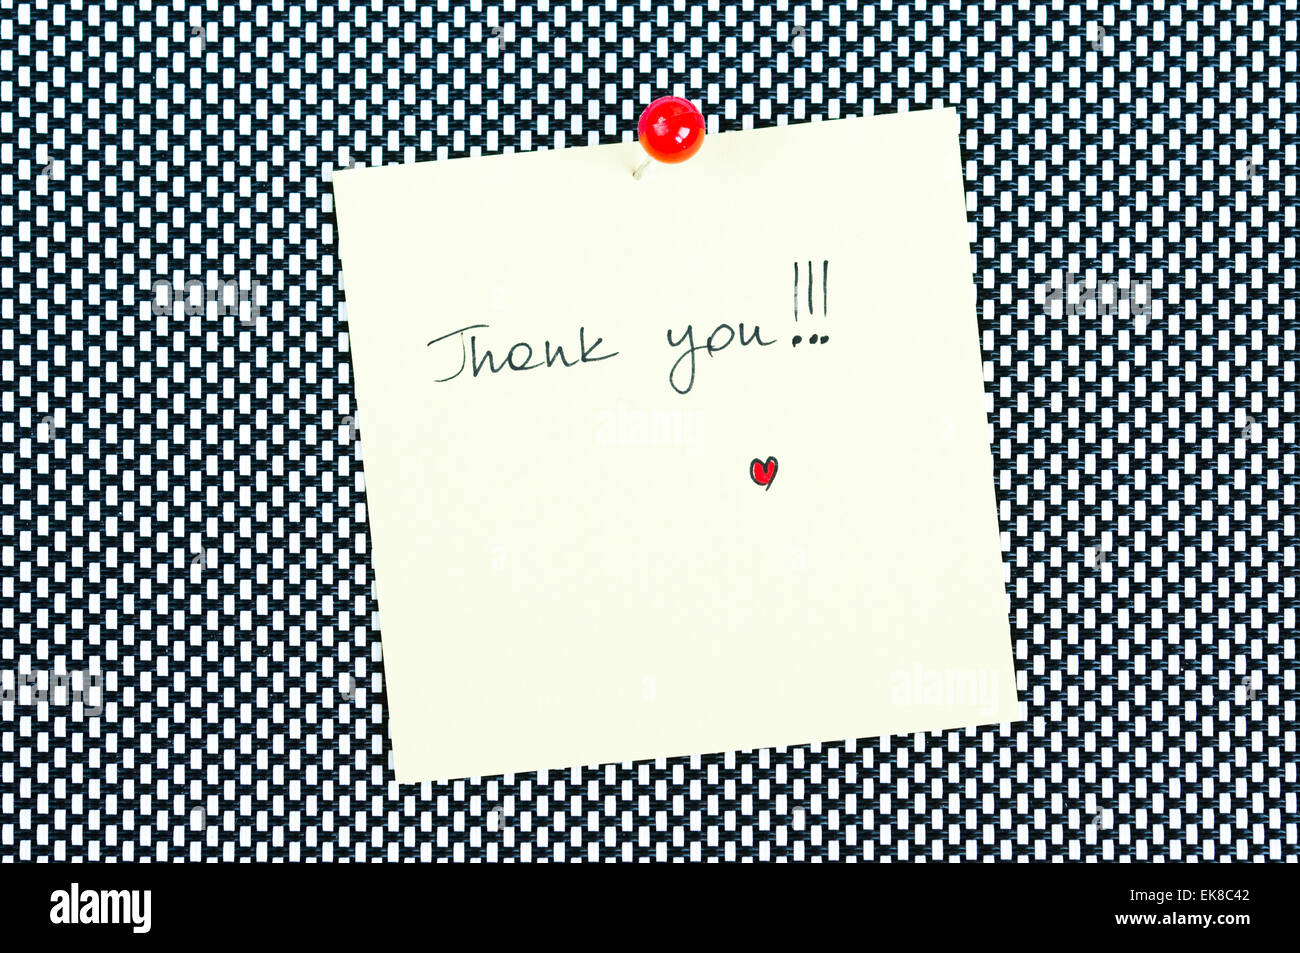 Thank You - Stock Image